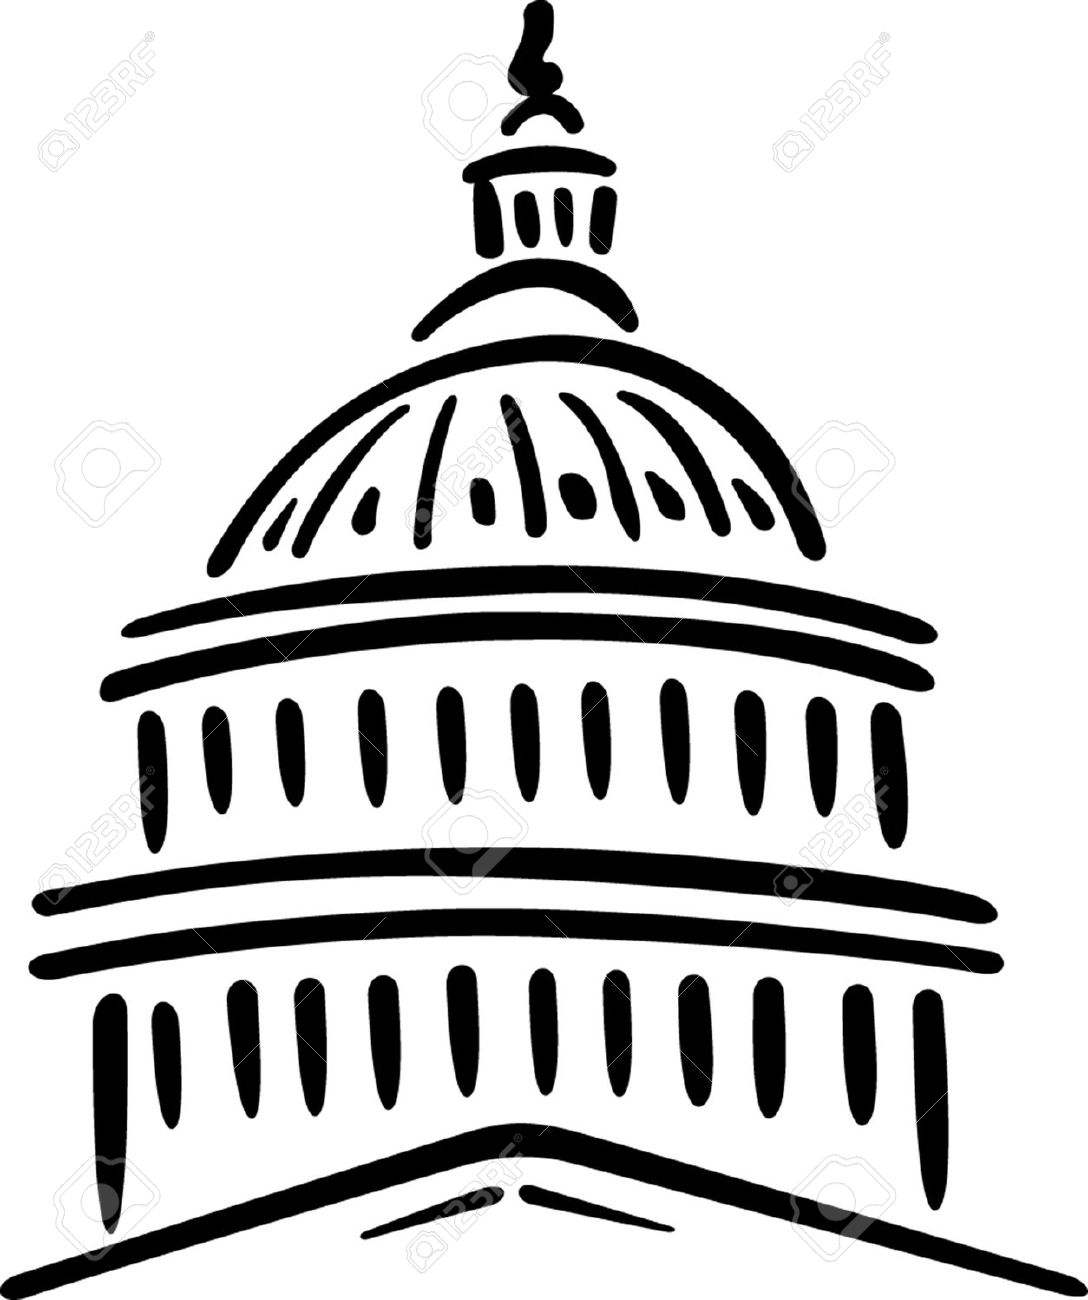 Capitol building dome clipart.